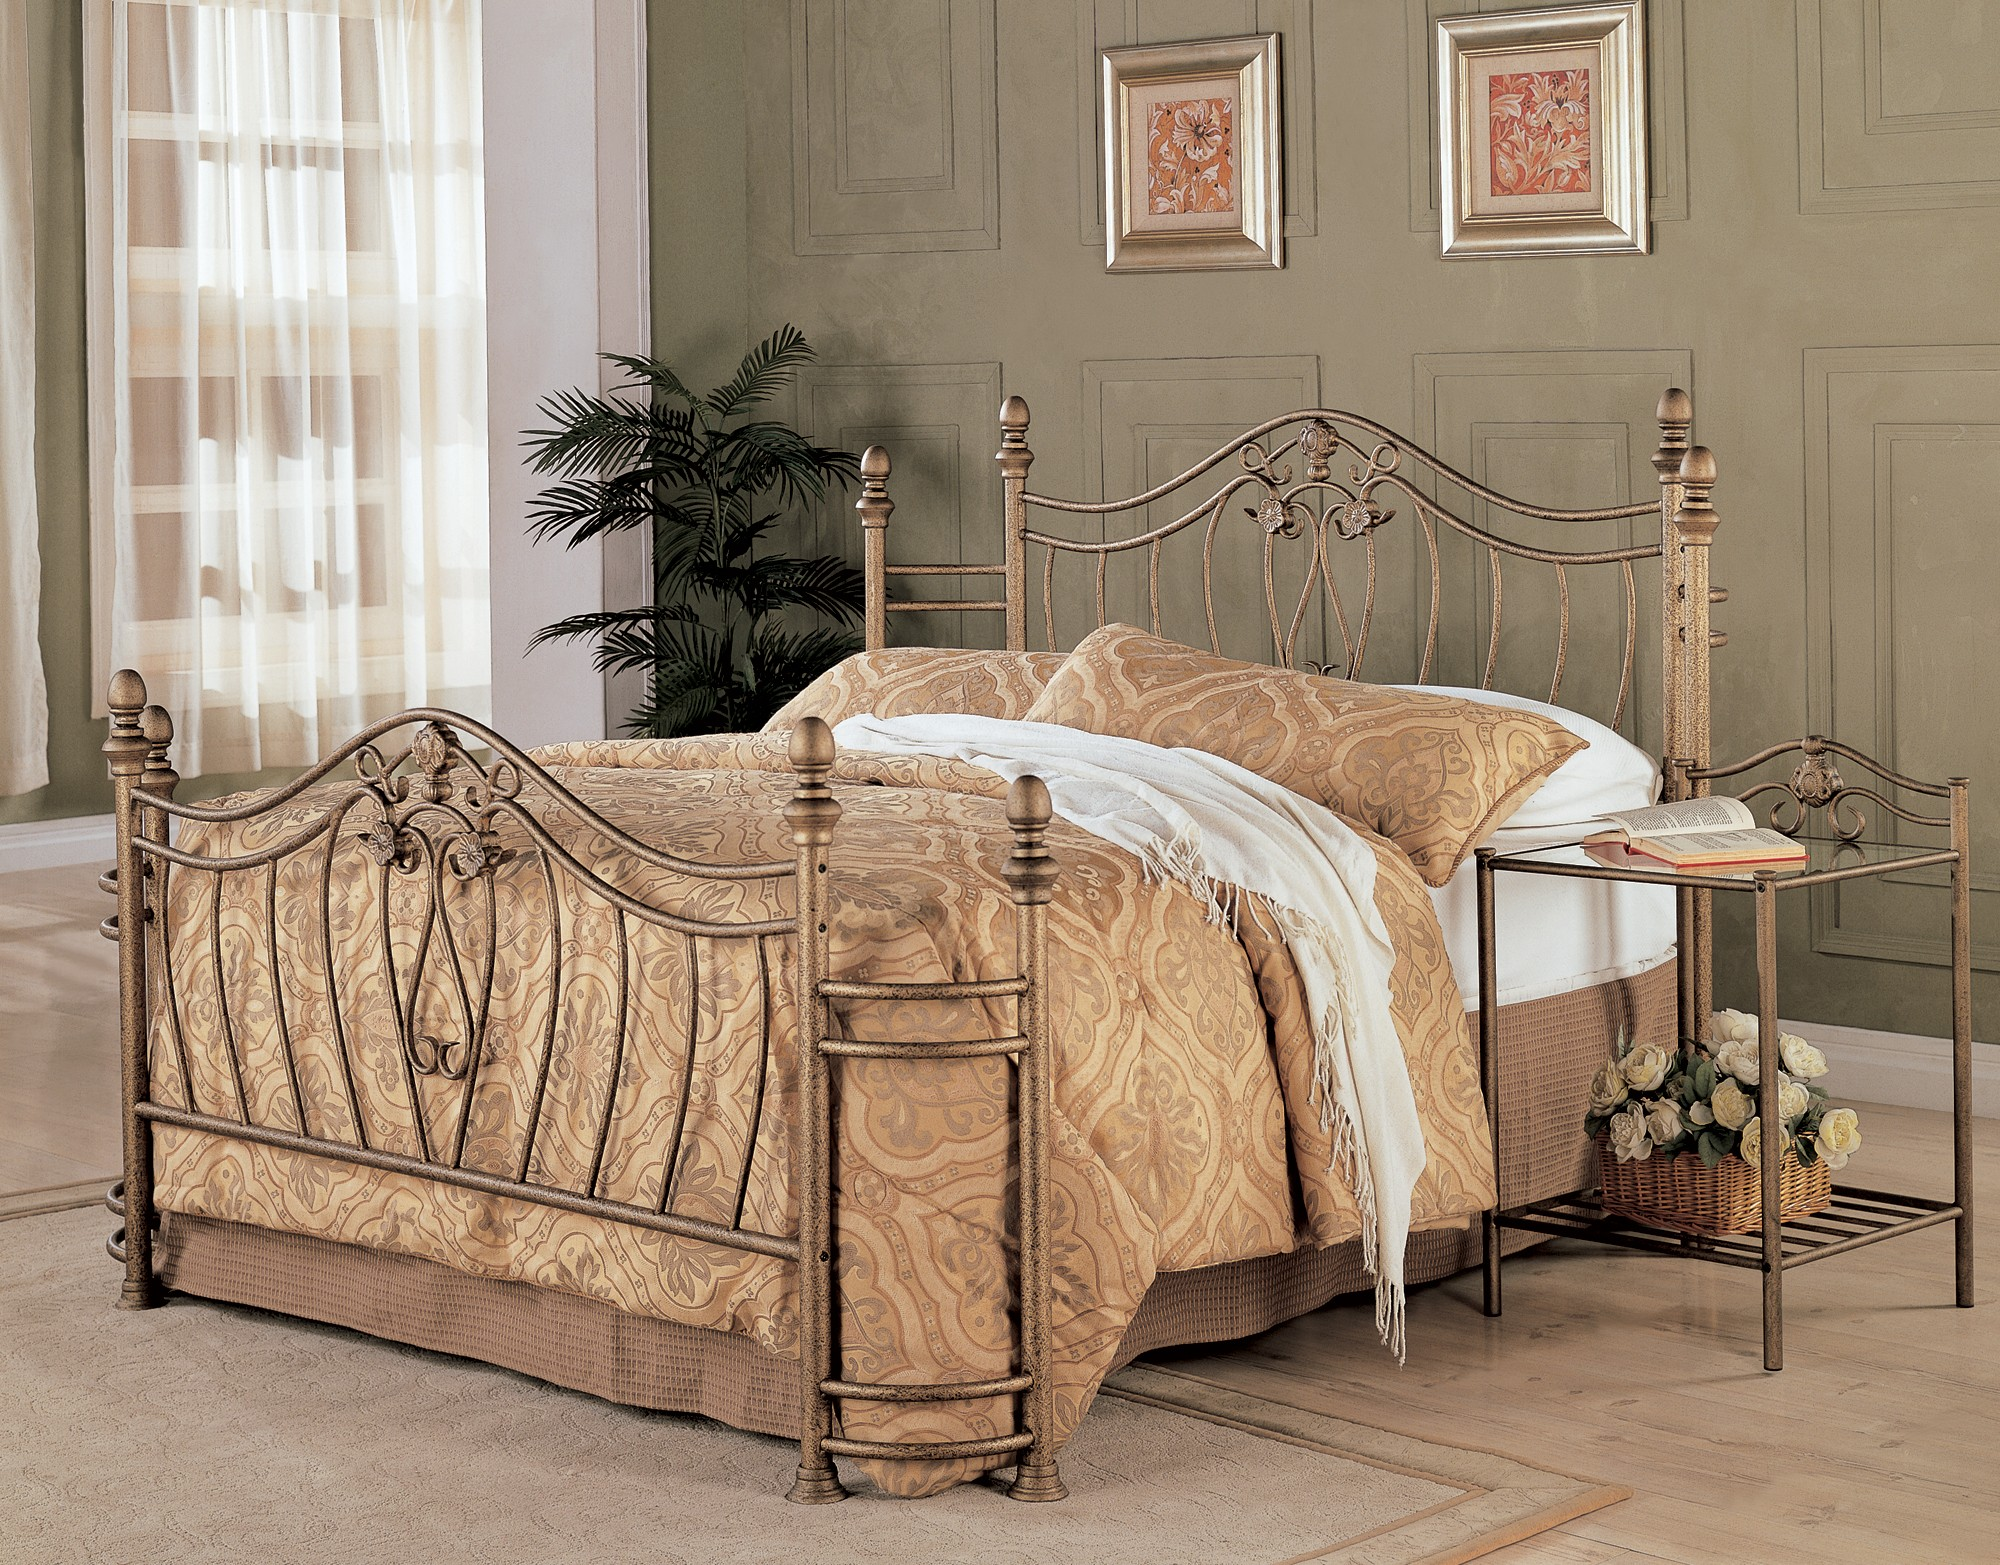 Sydney antique brushed gold bedroom set from coaster for Bedroom furniture sydney